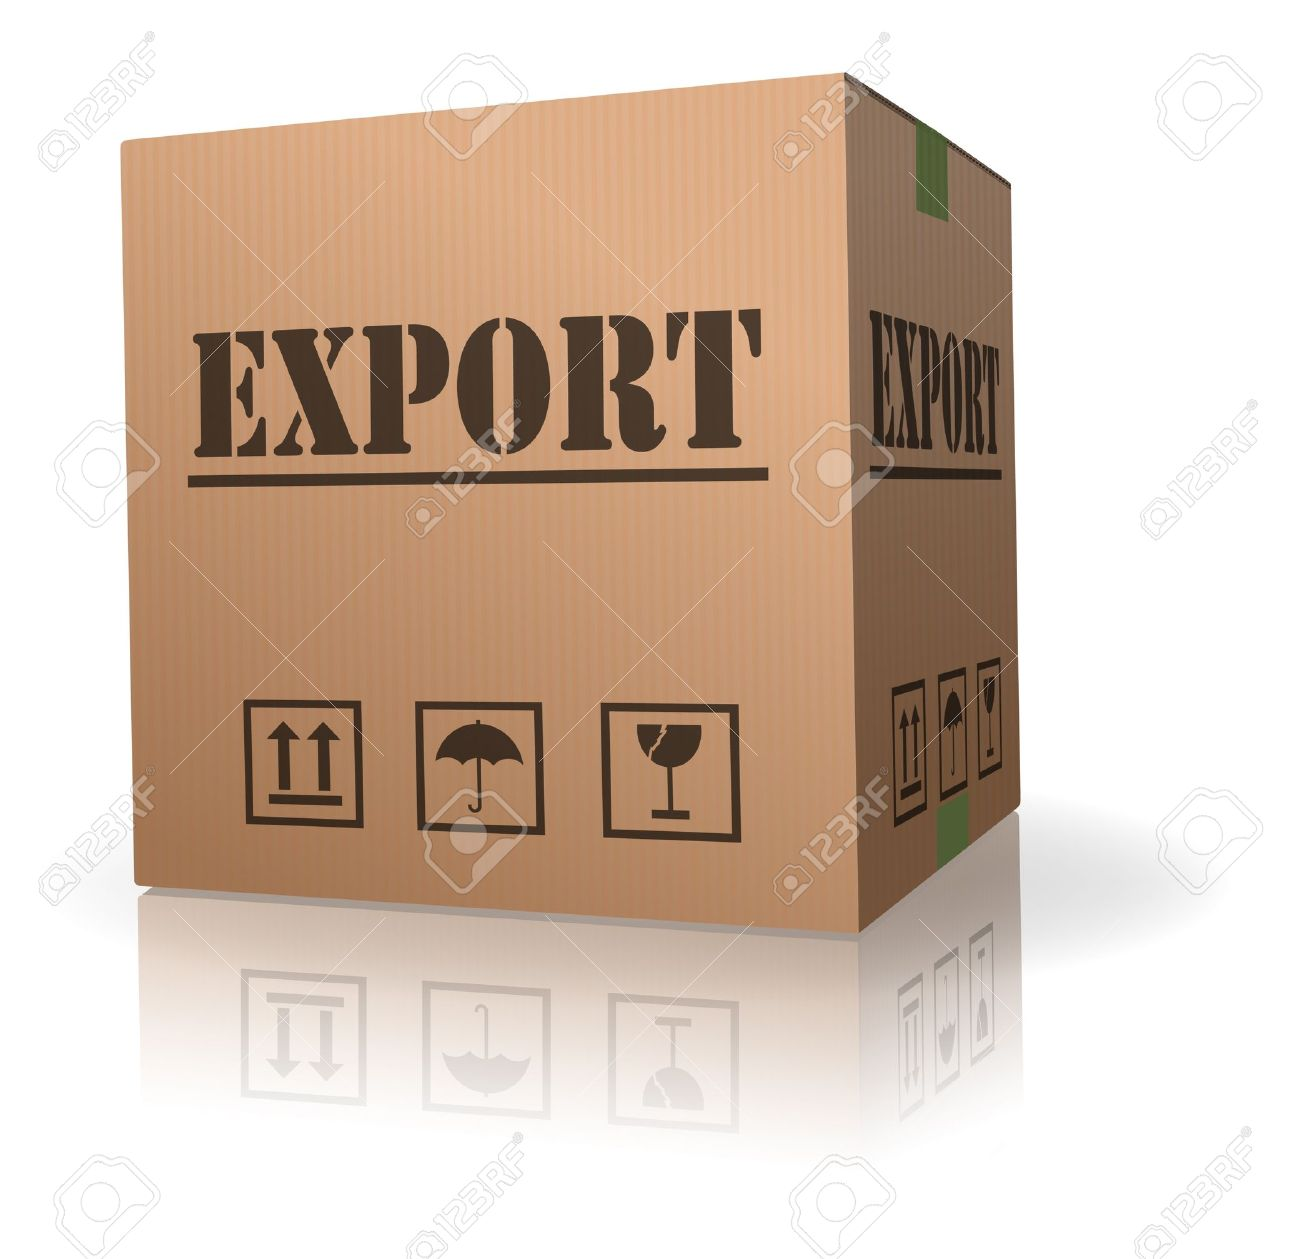 export sending package international trade parcel delivery Stock Photo - 8013012